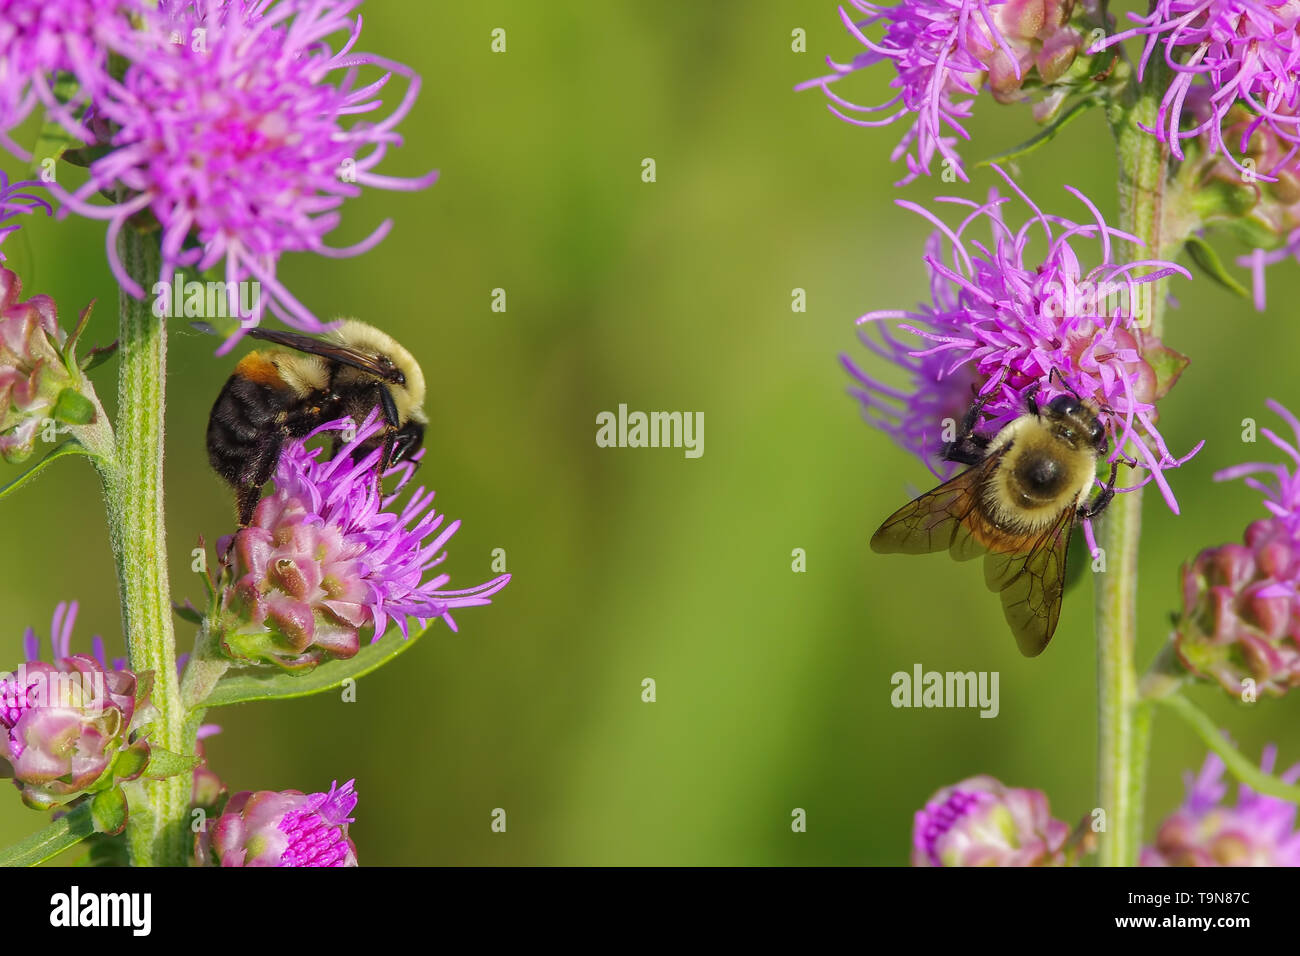 Furry cute bumble bees feeding and pollinating on what I believe is a purple rough blazing star flower - smooth green background - in Crex Meadows Wil - Stock Image